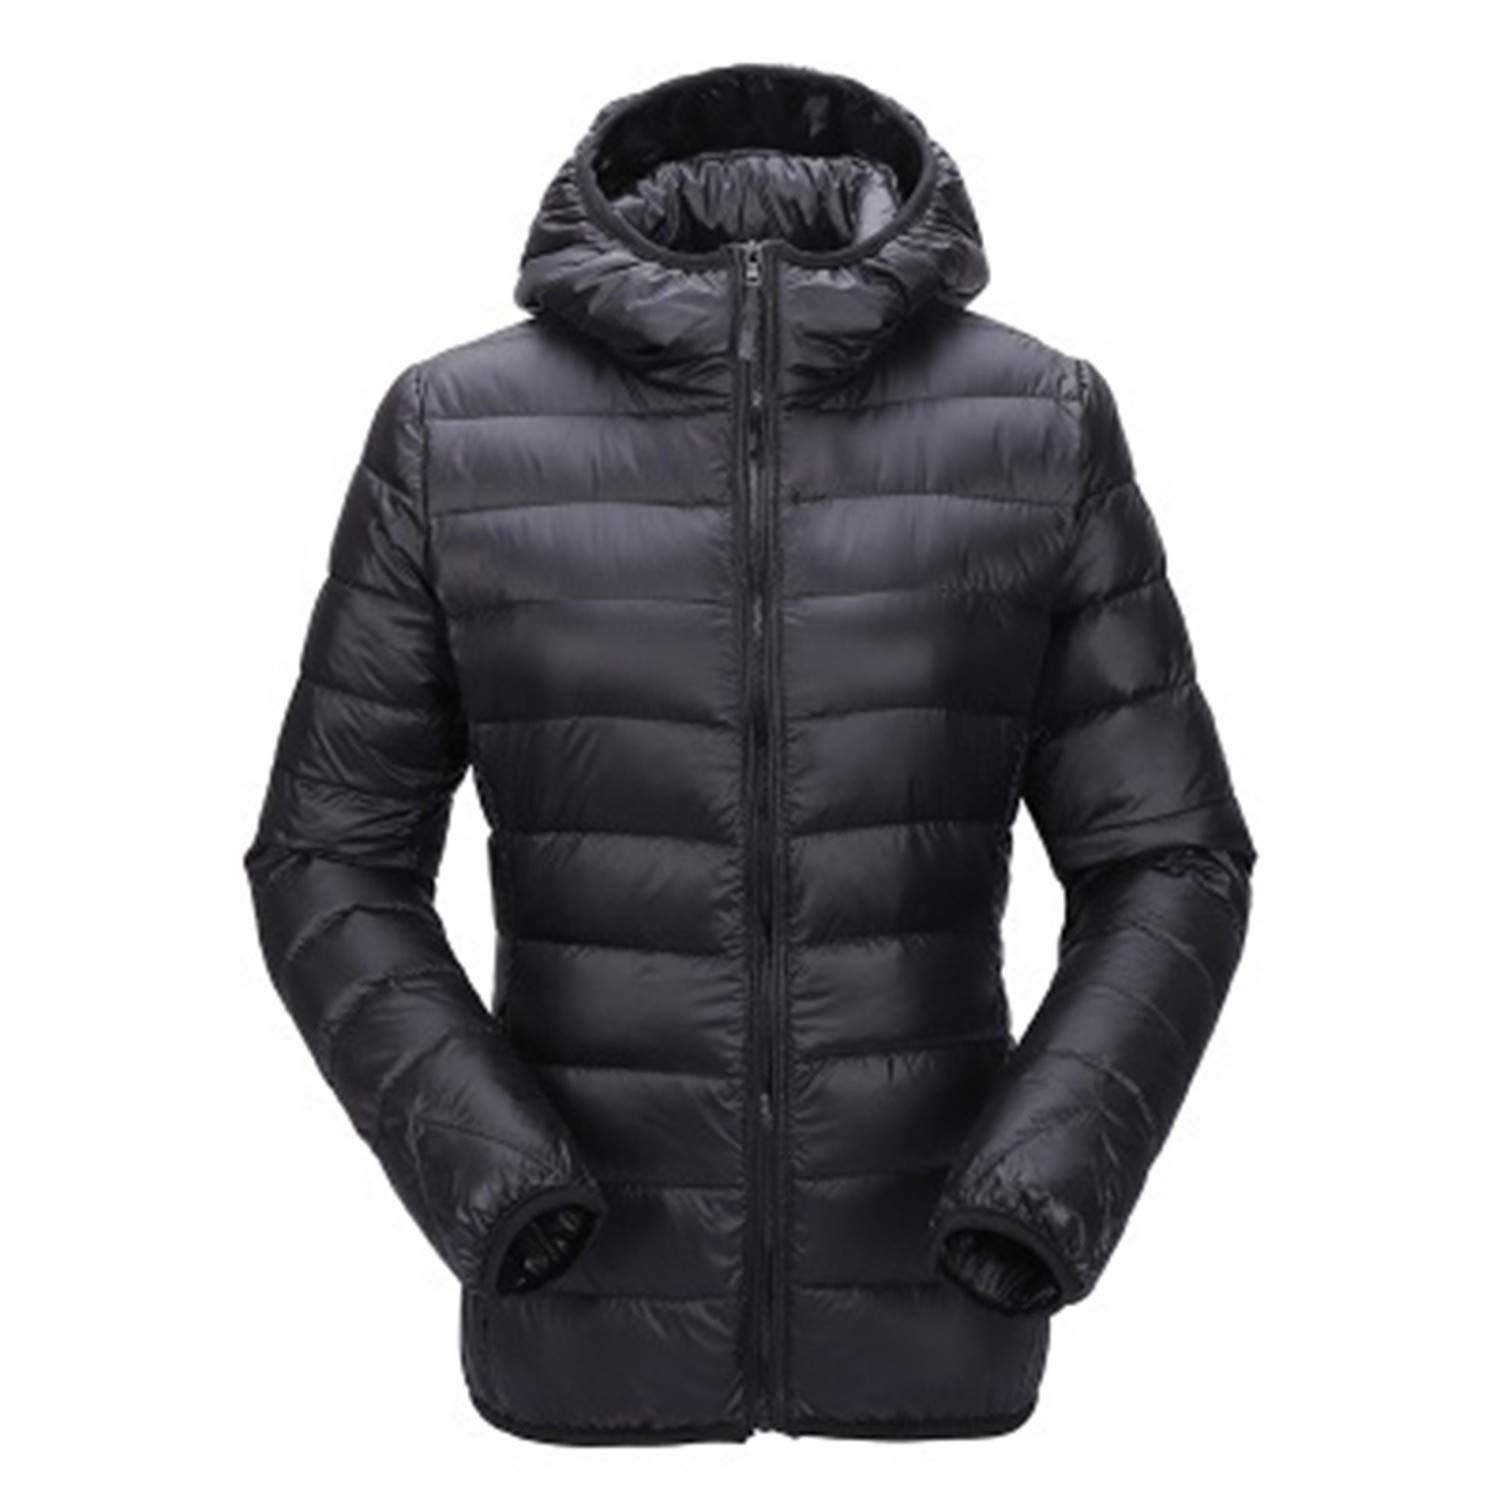 Black Hooded Winter Coat Duck Down Jackets Casual Slim Fit Long Sleeve Womens Parka Coats